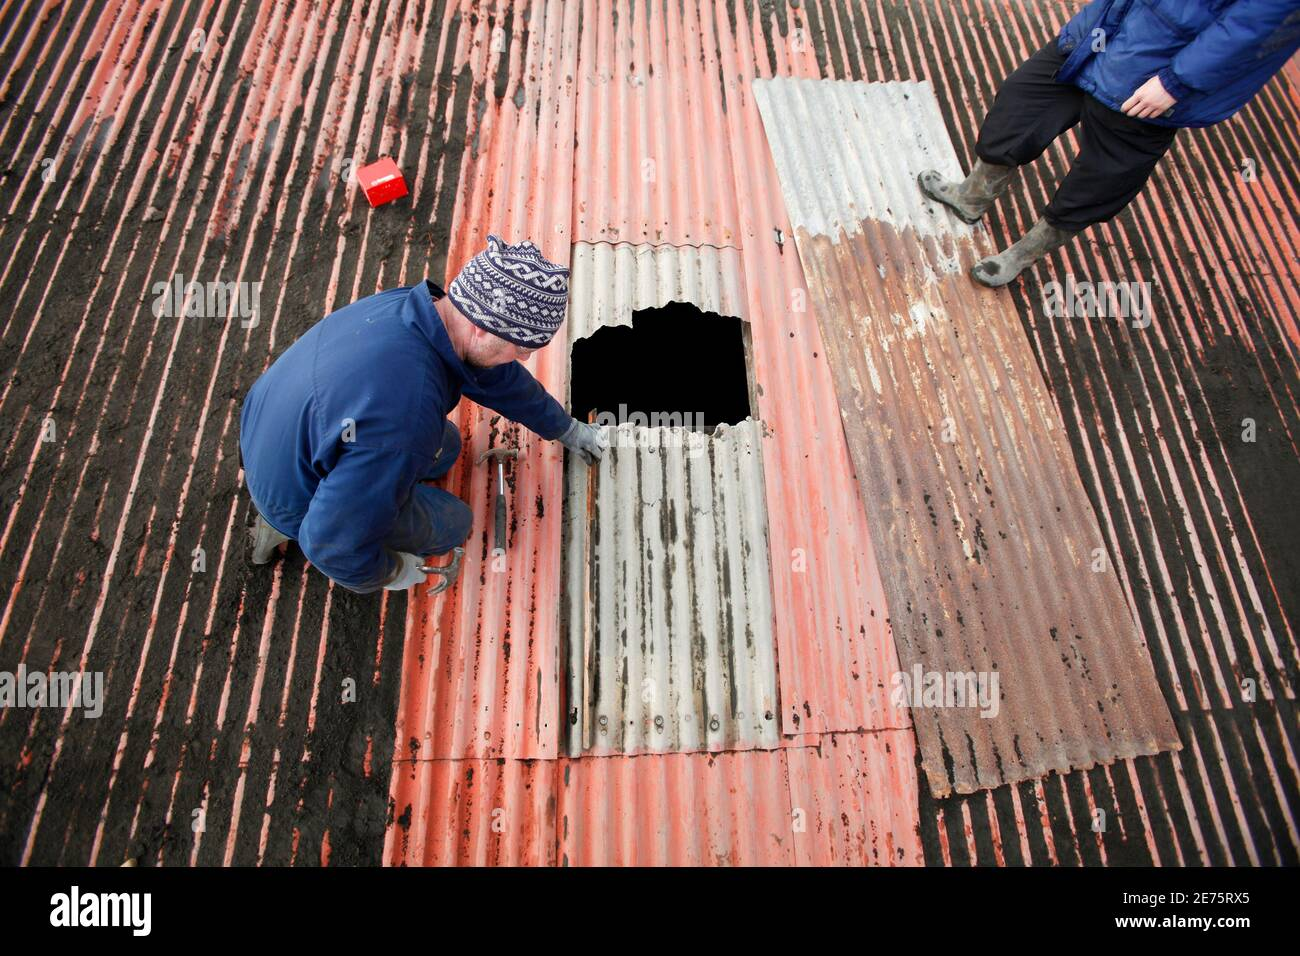 Farmers Bjarni Thorvaldsson and Thorgrimur Bjarnason (R) inspect a hole in a barn roof as they work to clean off volcanic ash that has accumulated from an erupting volcano near Eyjafjallajokull April 18, 2010.  REUTERS/Lucas Jackson (ICELAND - Tags: DISASTER ENVIRONMENT) Stock Photo